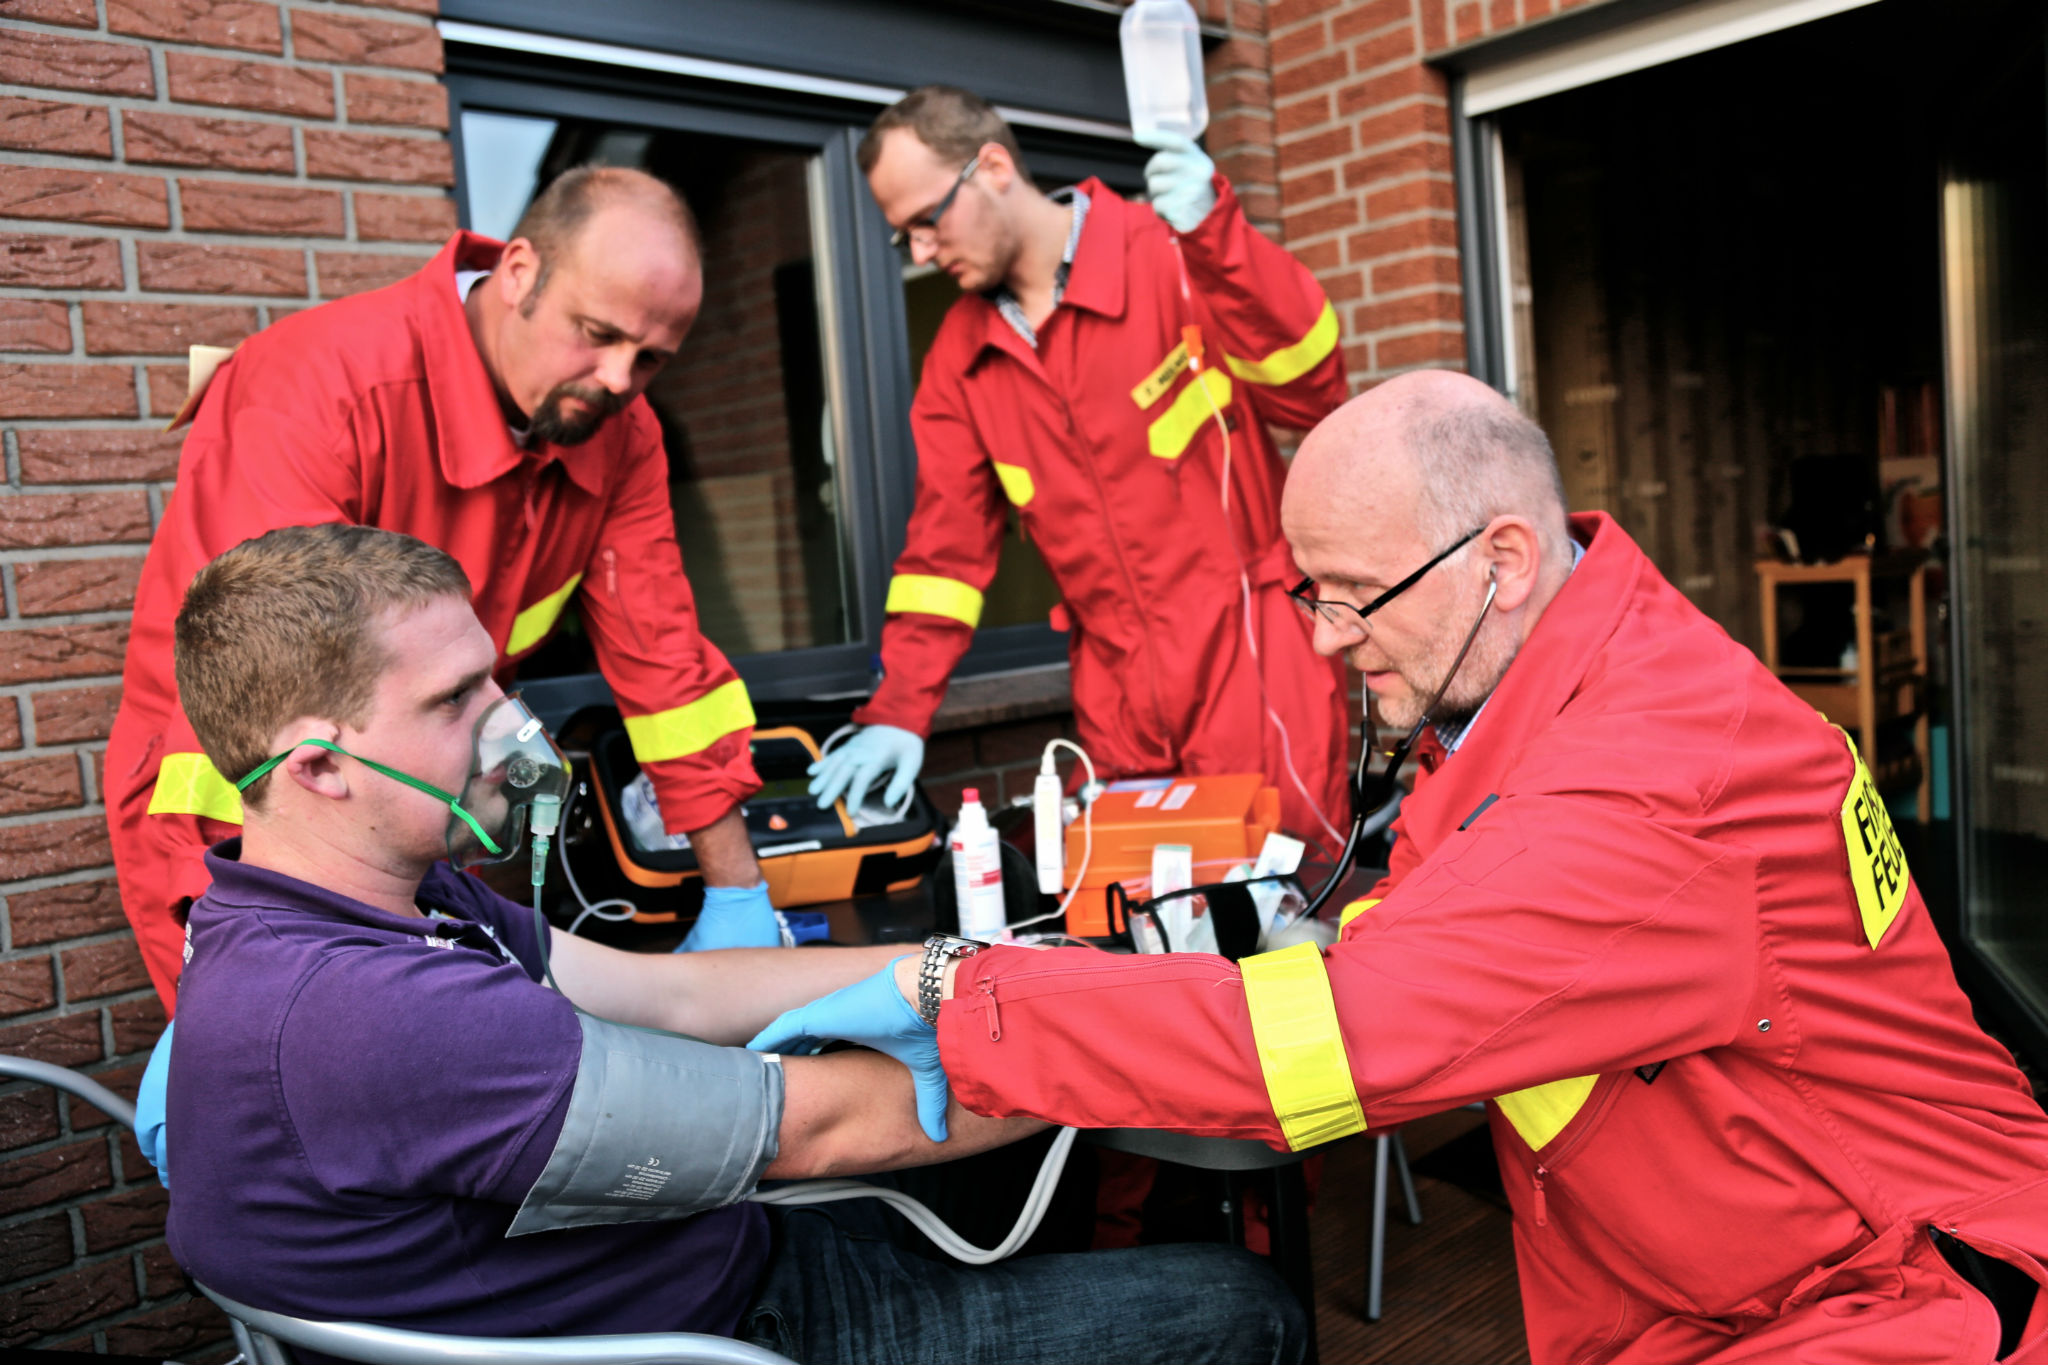 First Responder Behandlung